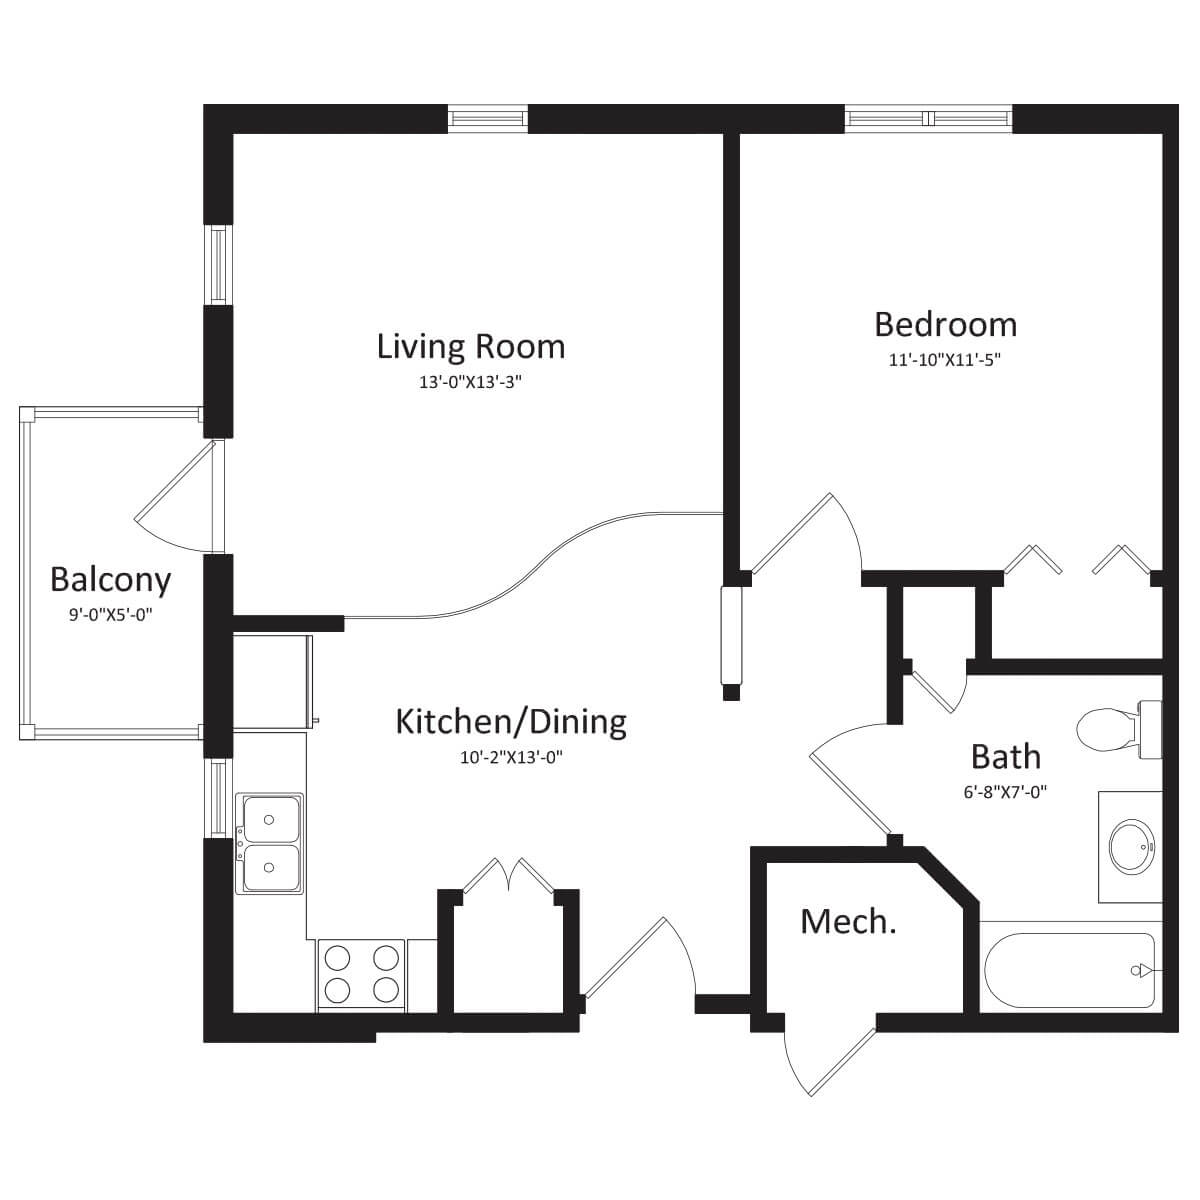 Floor Plans - The Village East Apartments